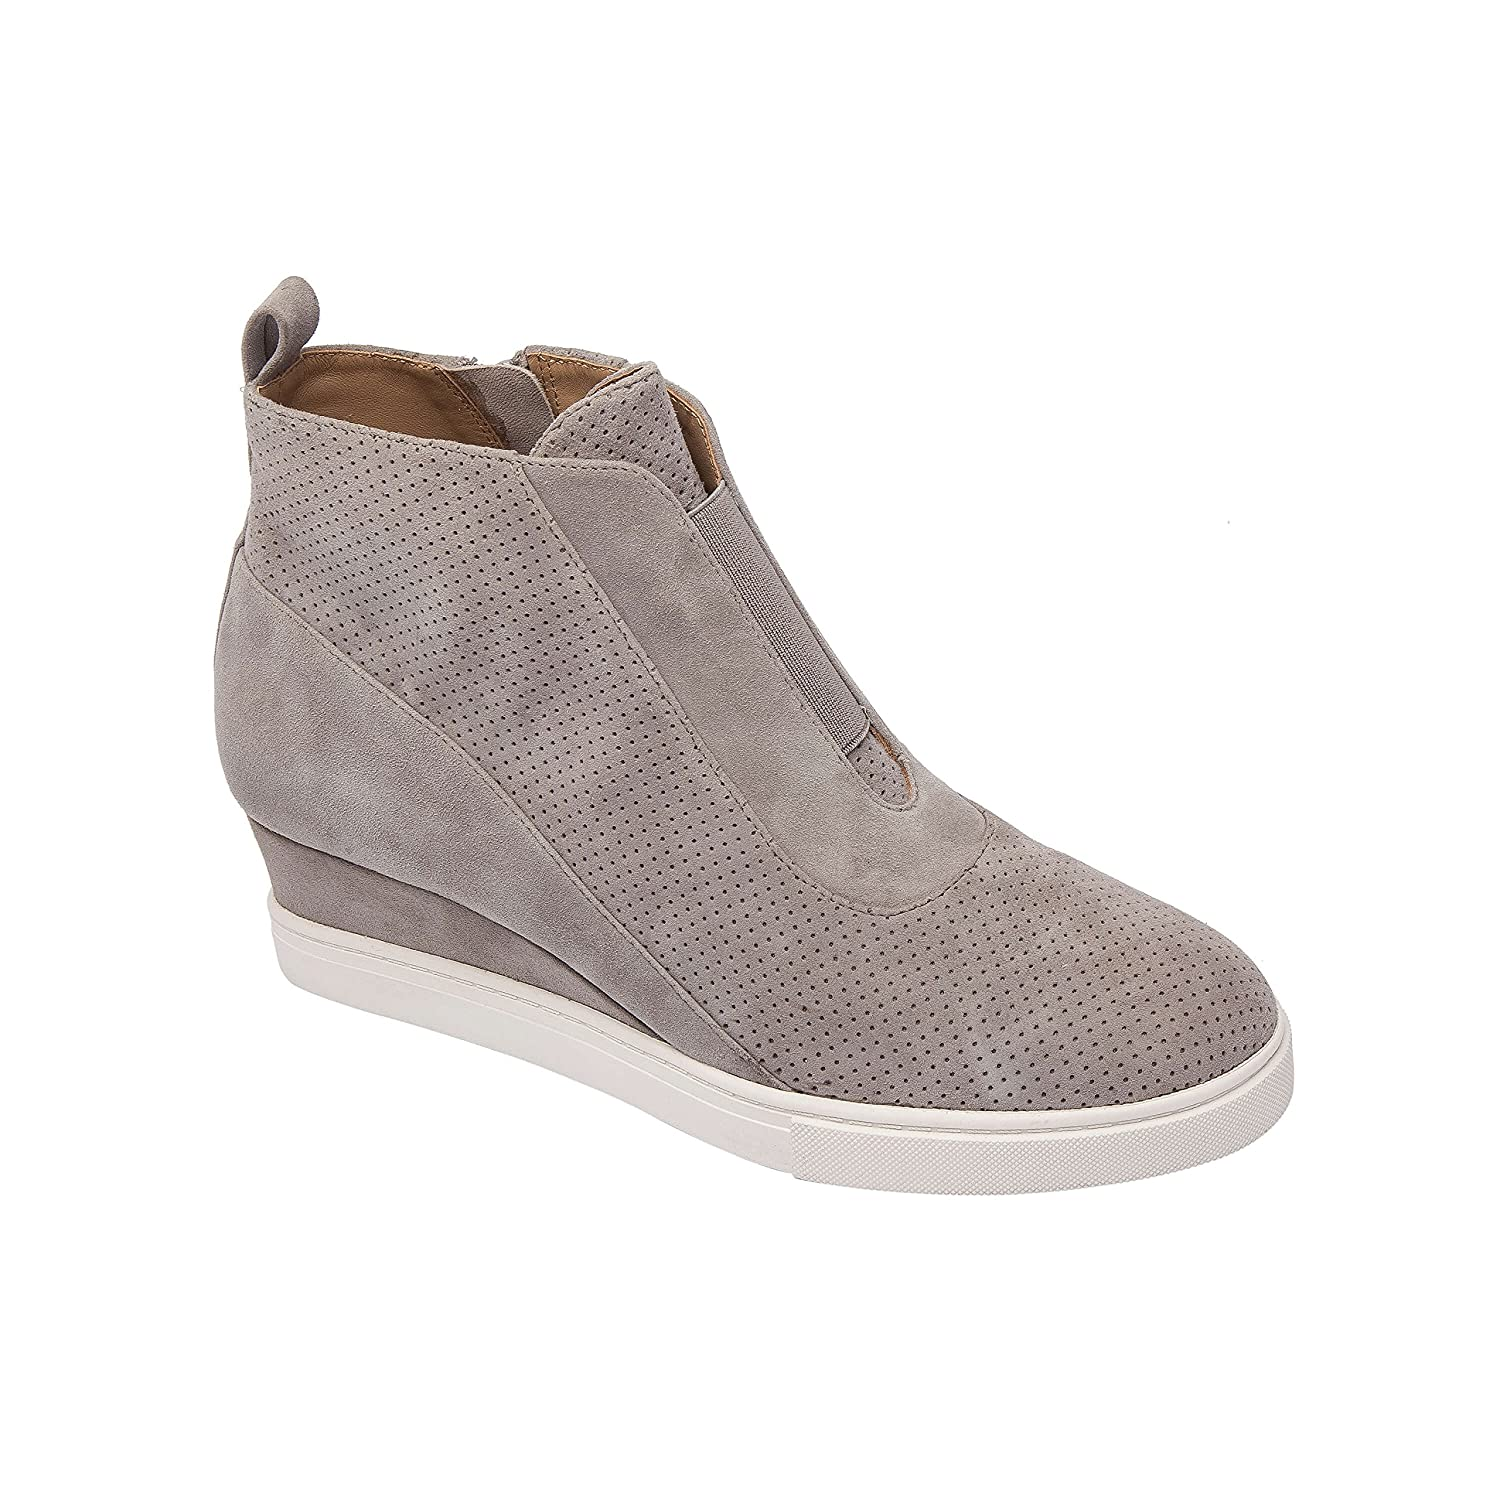 Linea Paolo Anna | Low Heel Designer Platform Wedge Sneaker Bootie Comfortable Fashion Ankle Boot (New Fall) B07F6RG9MF 5 M US|Rock Perforated Suede